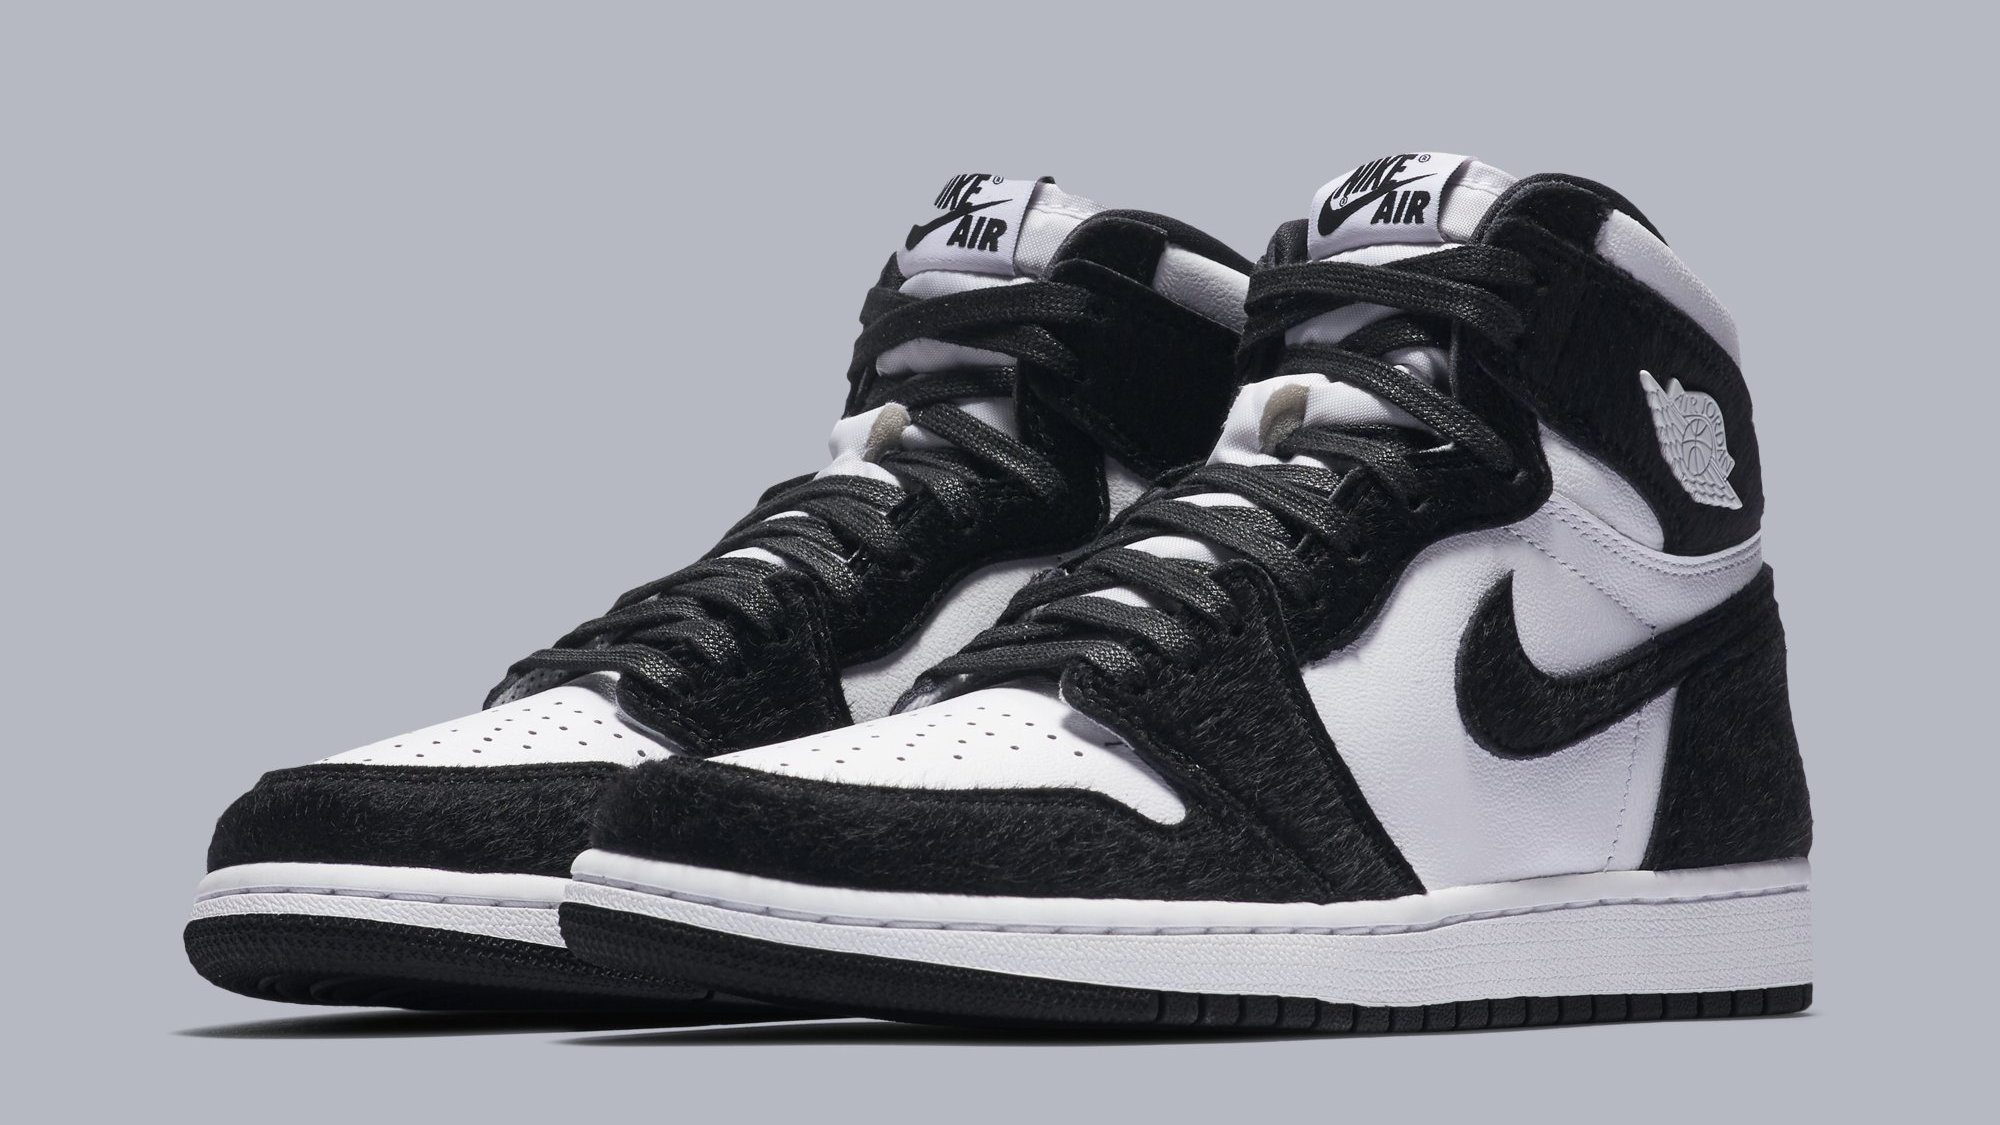 Air Jordan Retro 1 High OG 'BlackBlack Metallic Gold White